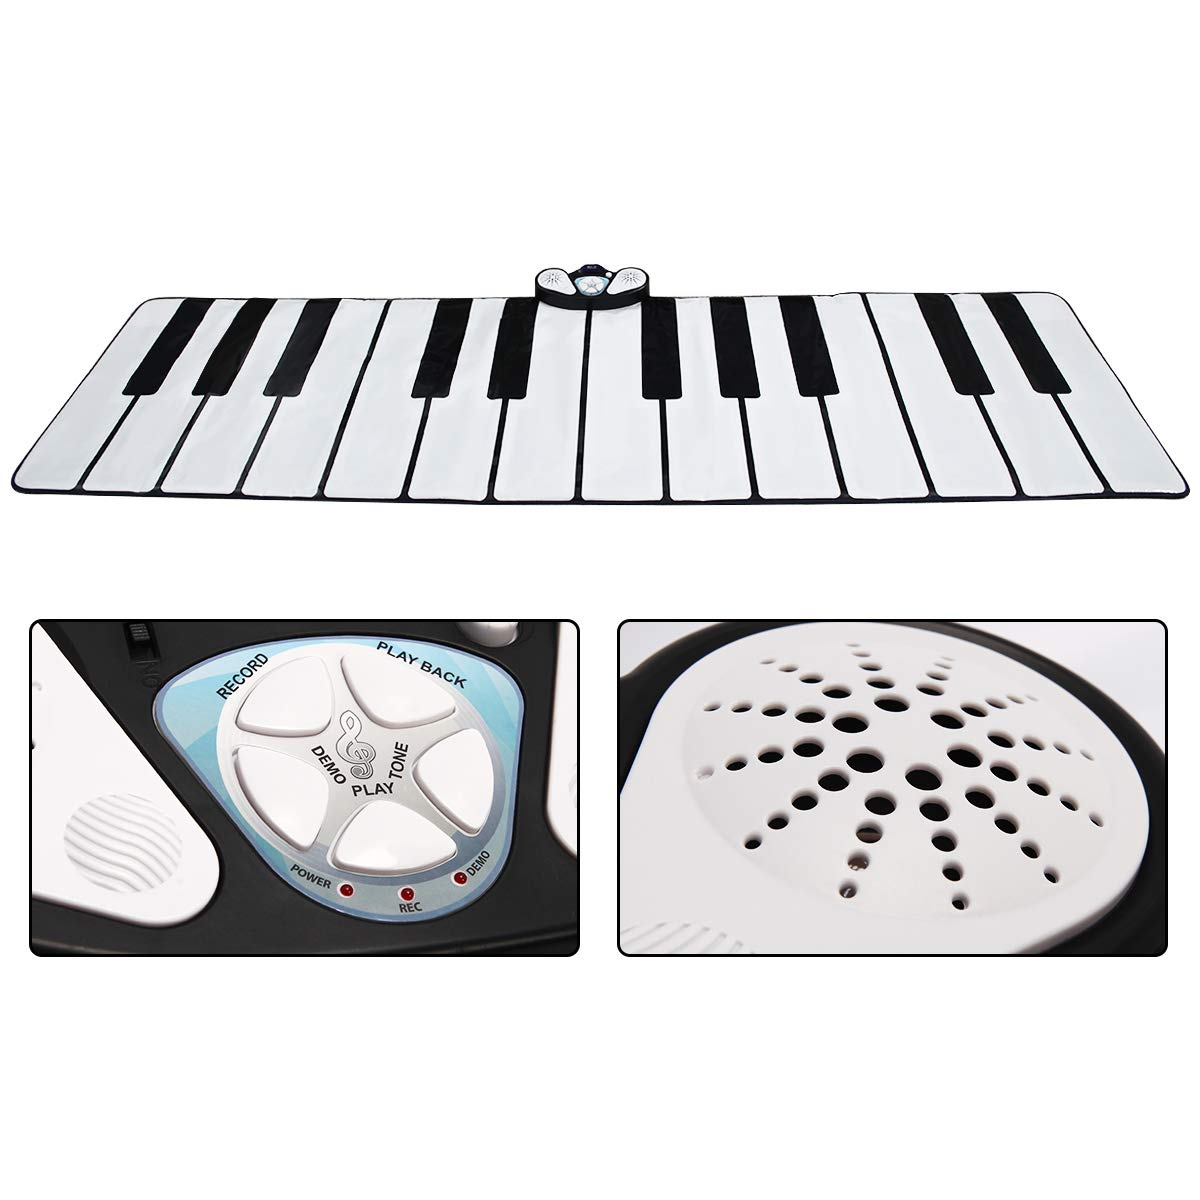 Costzon Giant Keyboard Playmat, 24 Keys Piano Play Mat, Foldable Activity Mat w/ 9 Selectable Musical Instruments, Play - Record - Playback - Demo - Tone Conversion Modes, Support MP3, Phone Play by Costzon (Image #6)